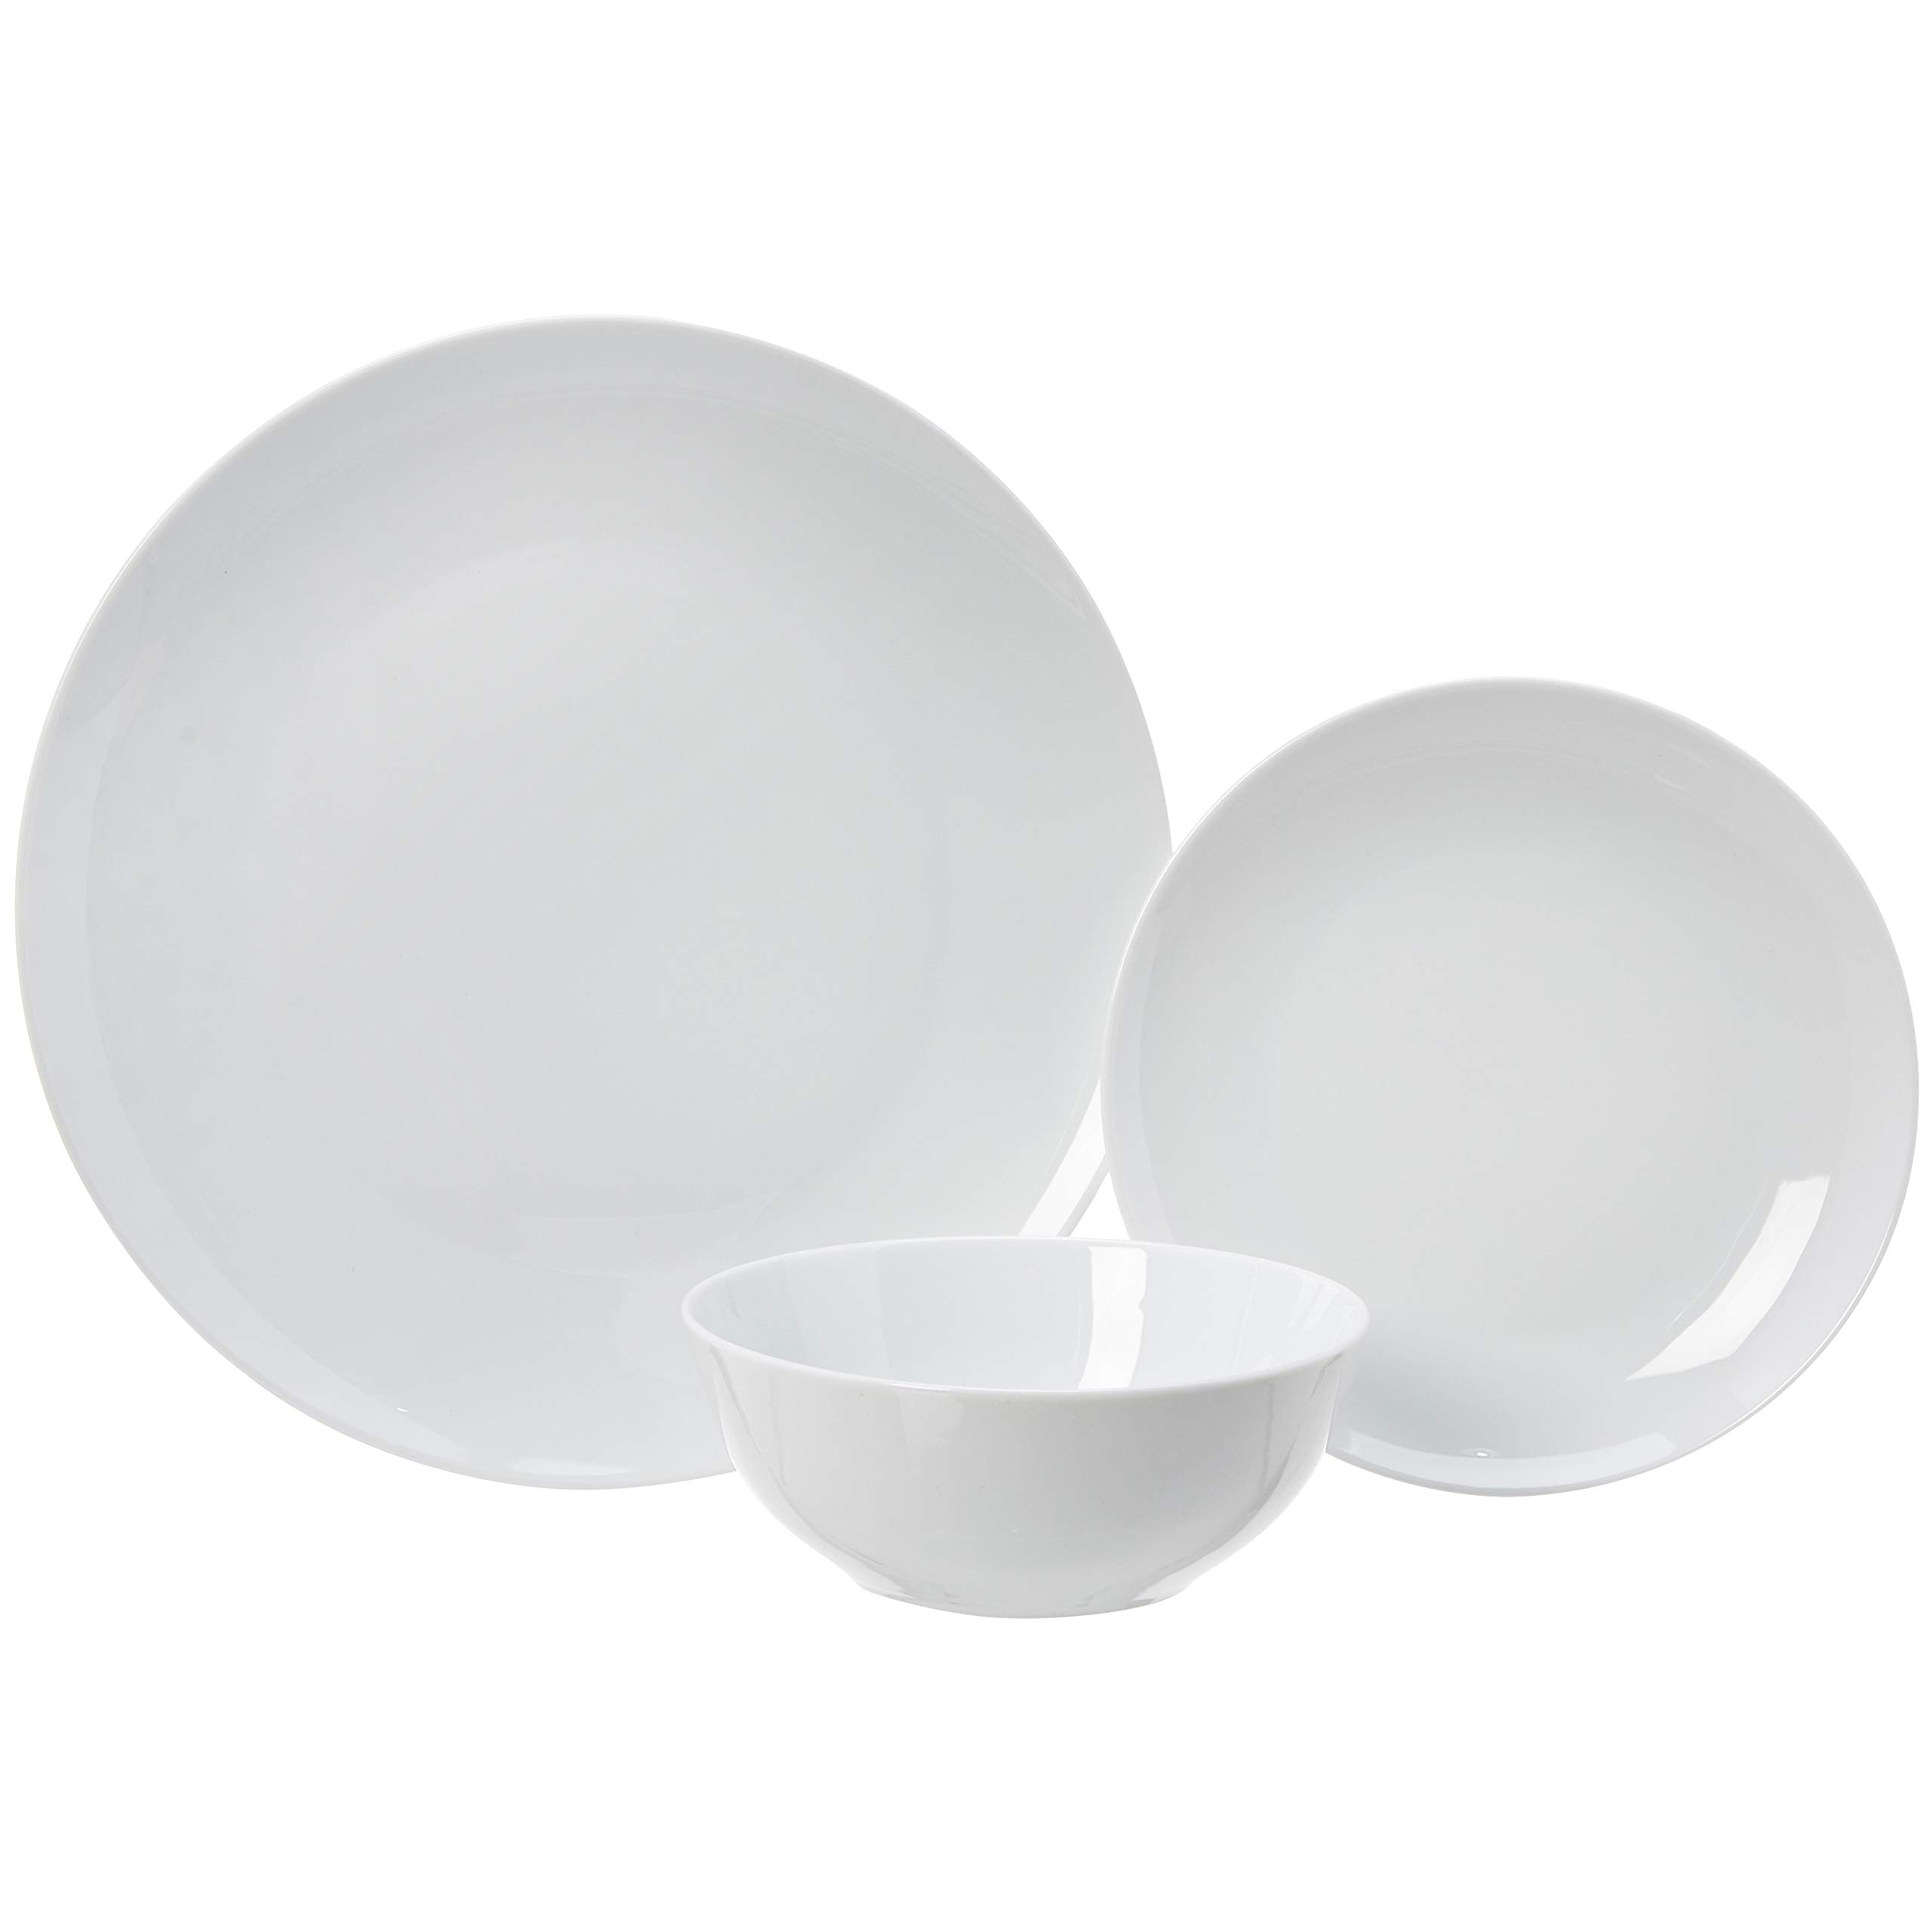 AmazonBasics 18-Piece Kitchen Dinnerware Set, Dishes, Bowls, Service for 6, White Porcelain Coupe by AmazonBasics (Image #4)